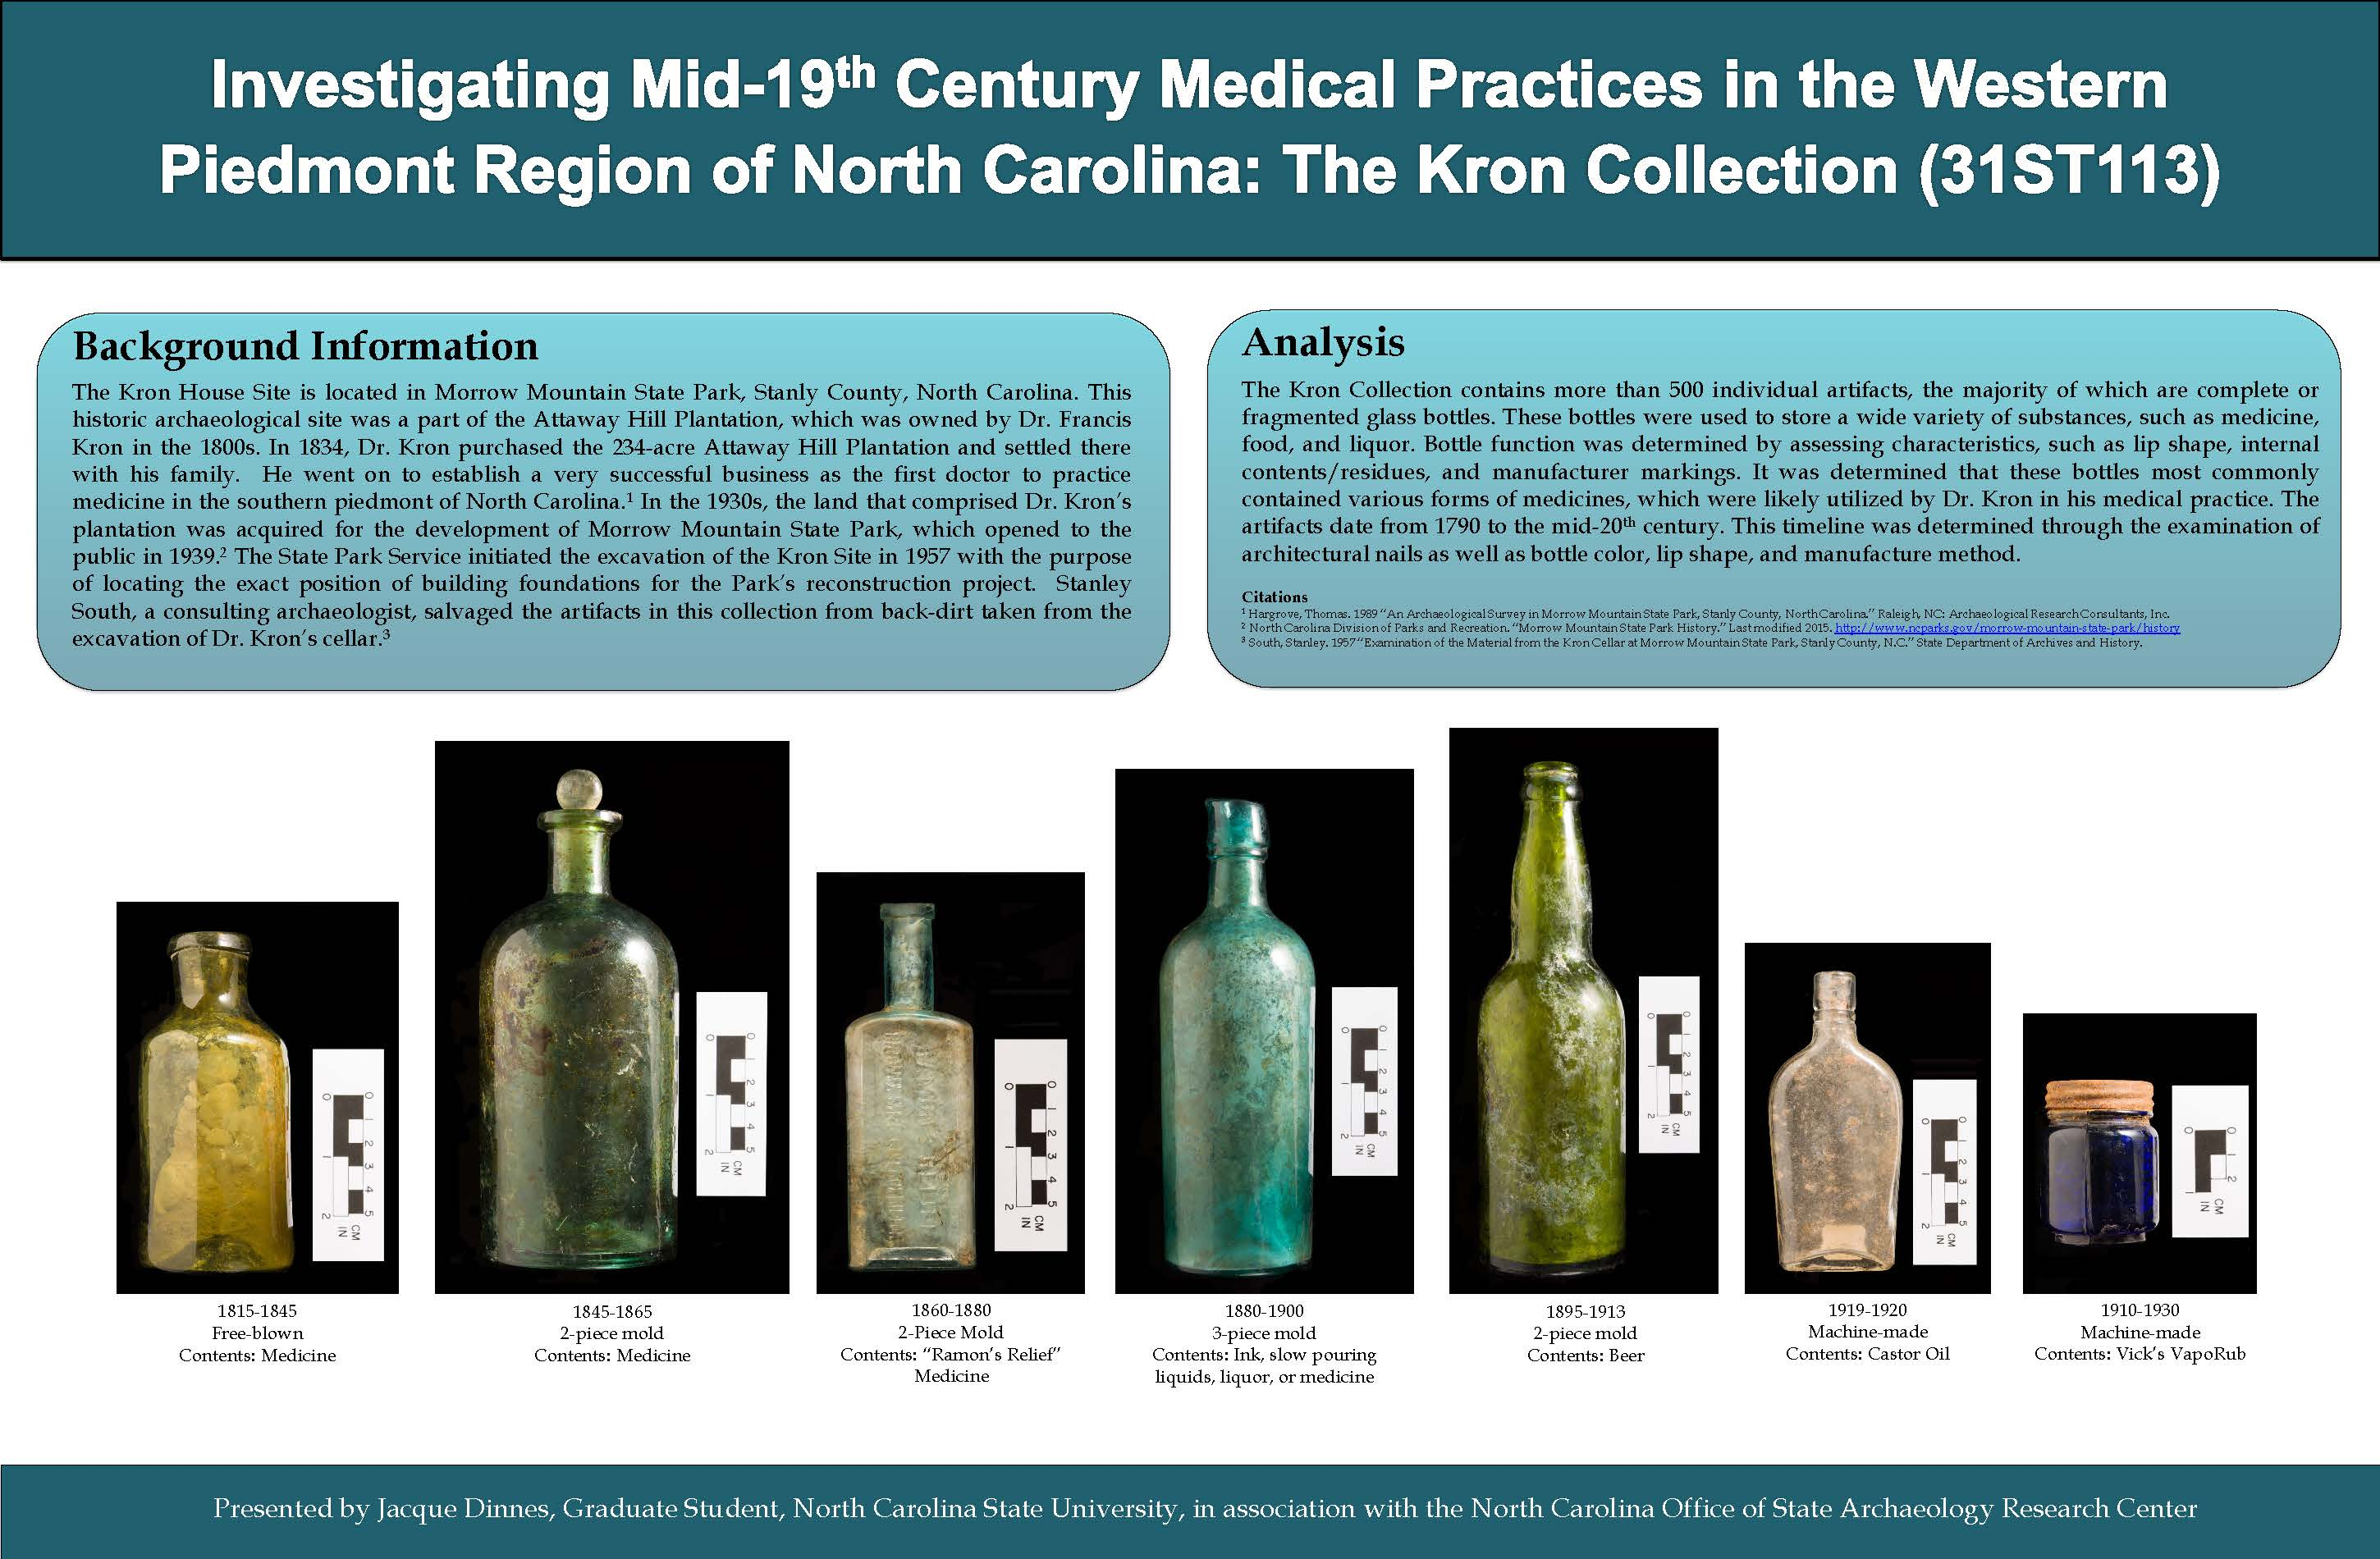 Poster showing artifacts (bottles) from Kron House and results